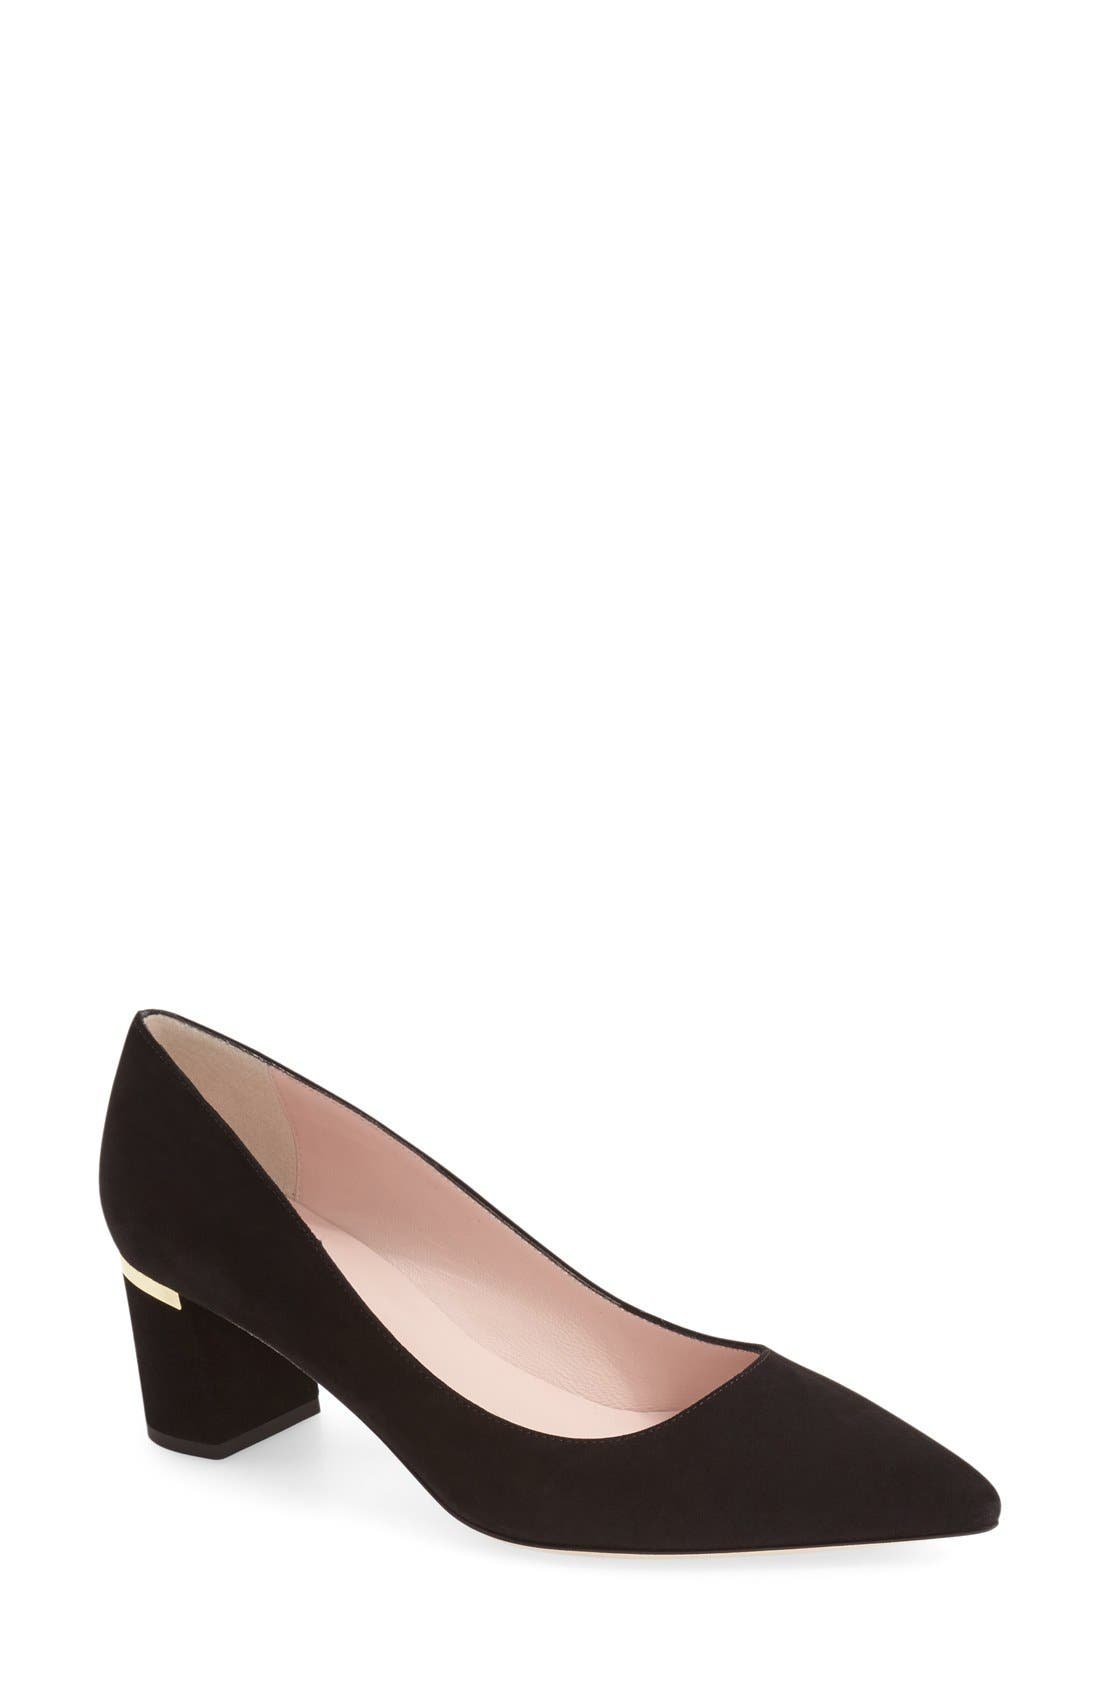 KATE SPADE NEW YORK 'milan too' pointy toe